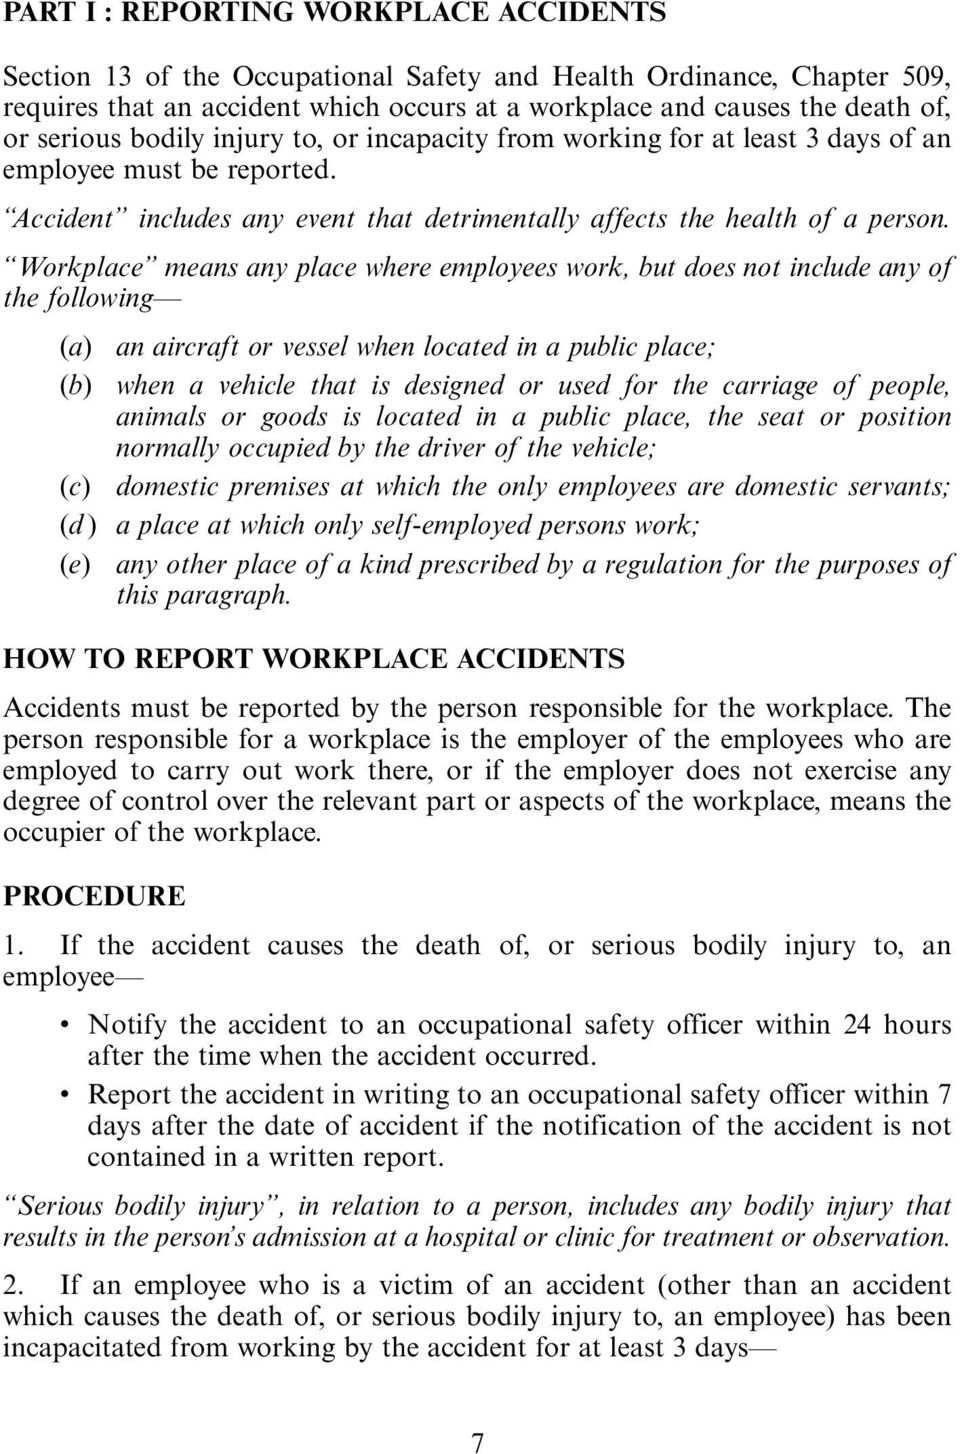 Workplace means any place where employees work, but does not include any of the following (a) an aircraft or vessel when located in a public place; (b) when a vehicle that is designed or used for the